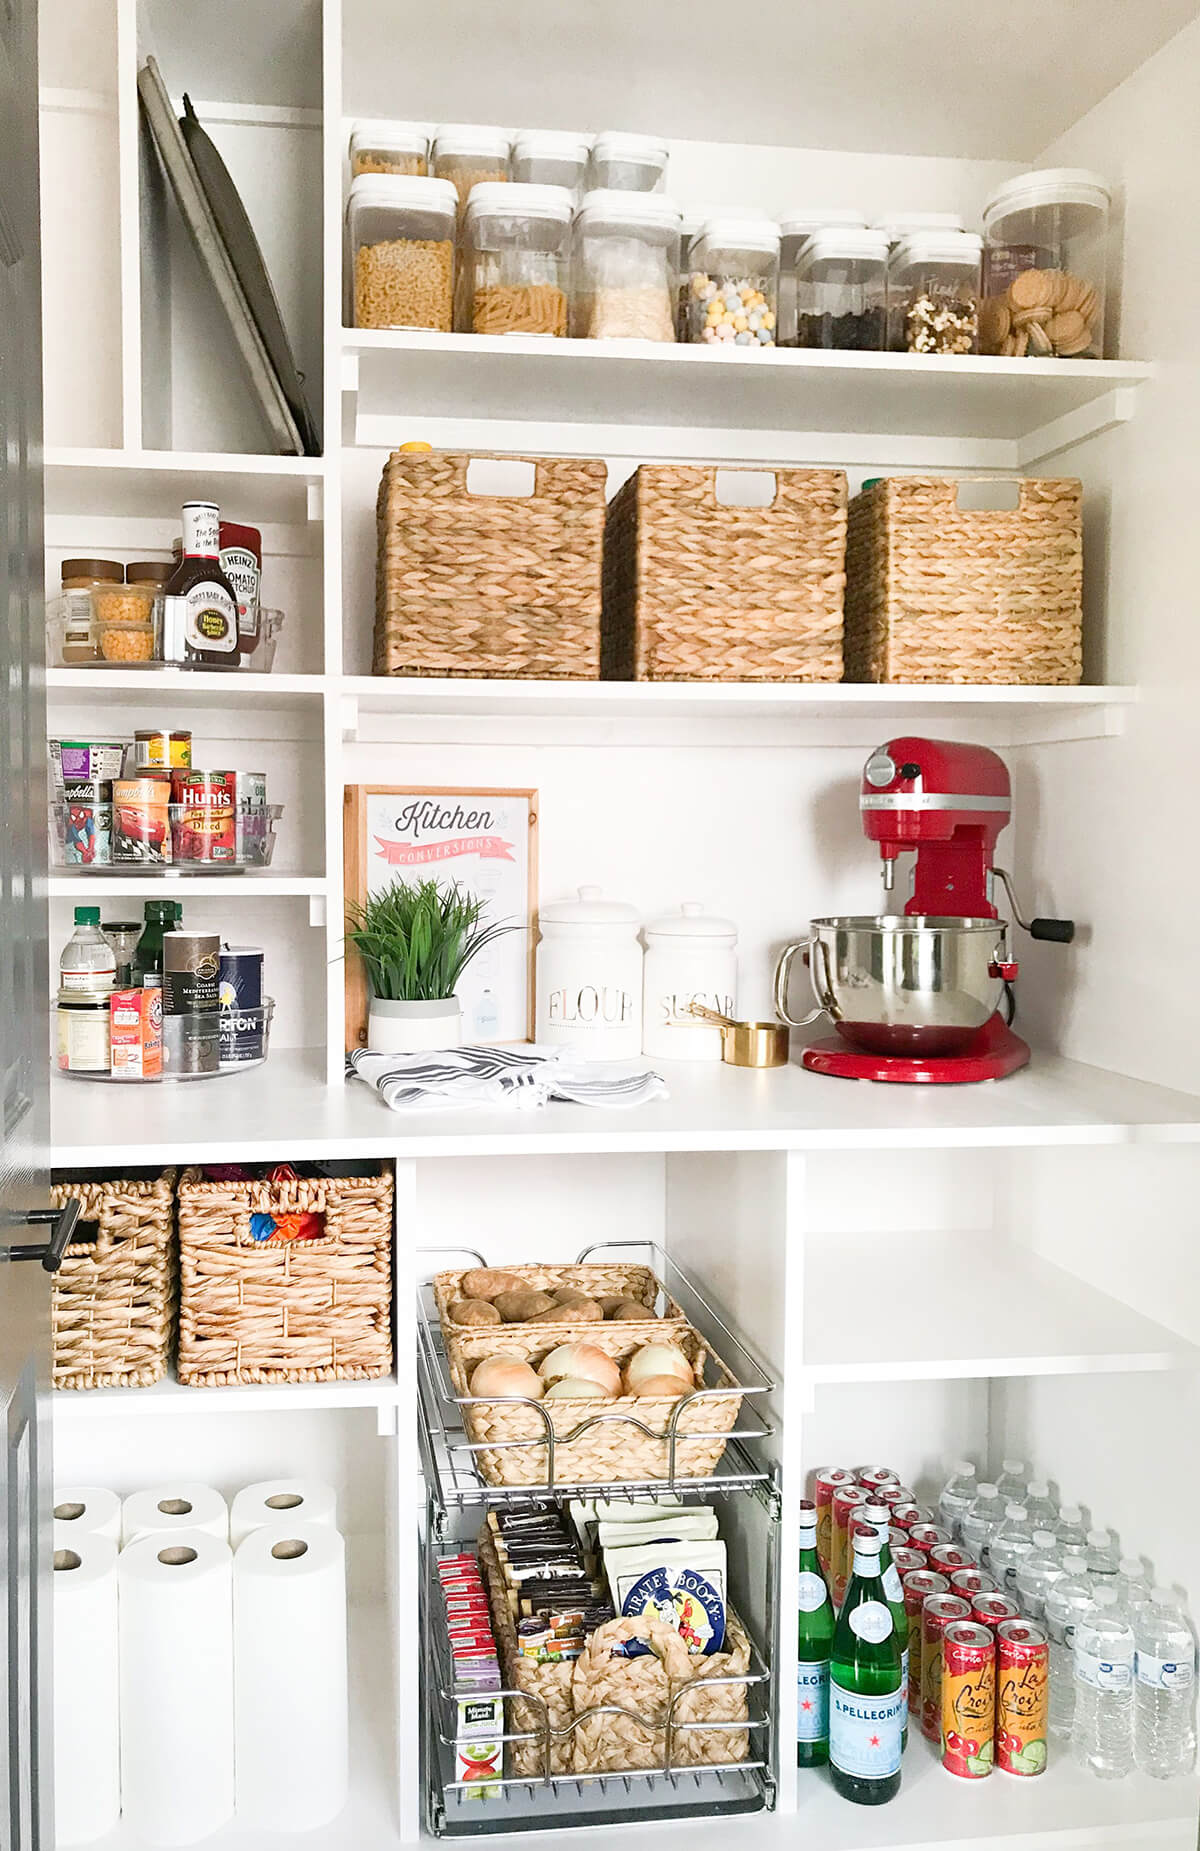 Consider Custom Pantry Shelving Ideas